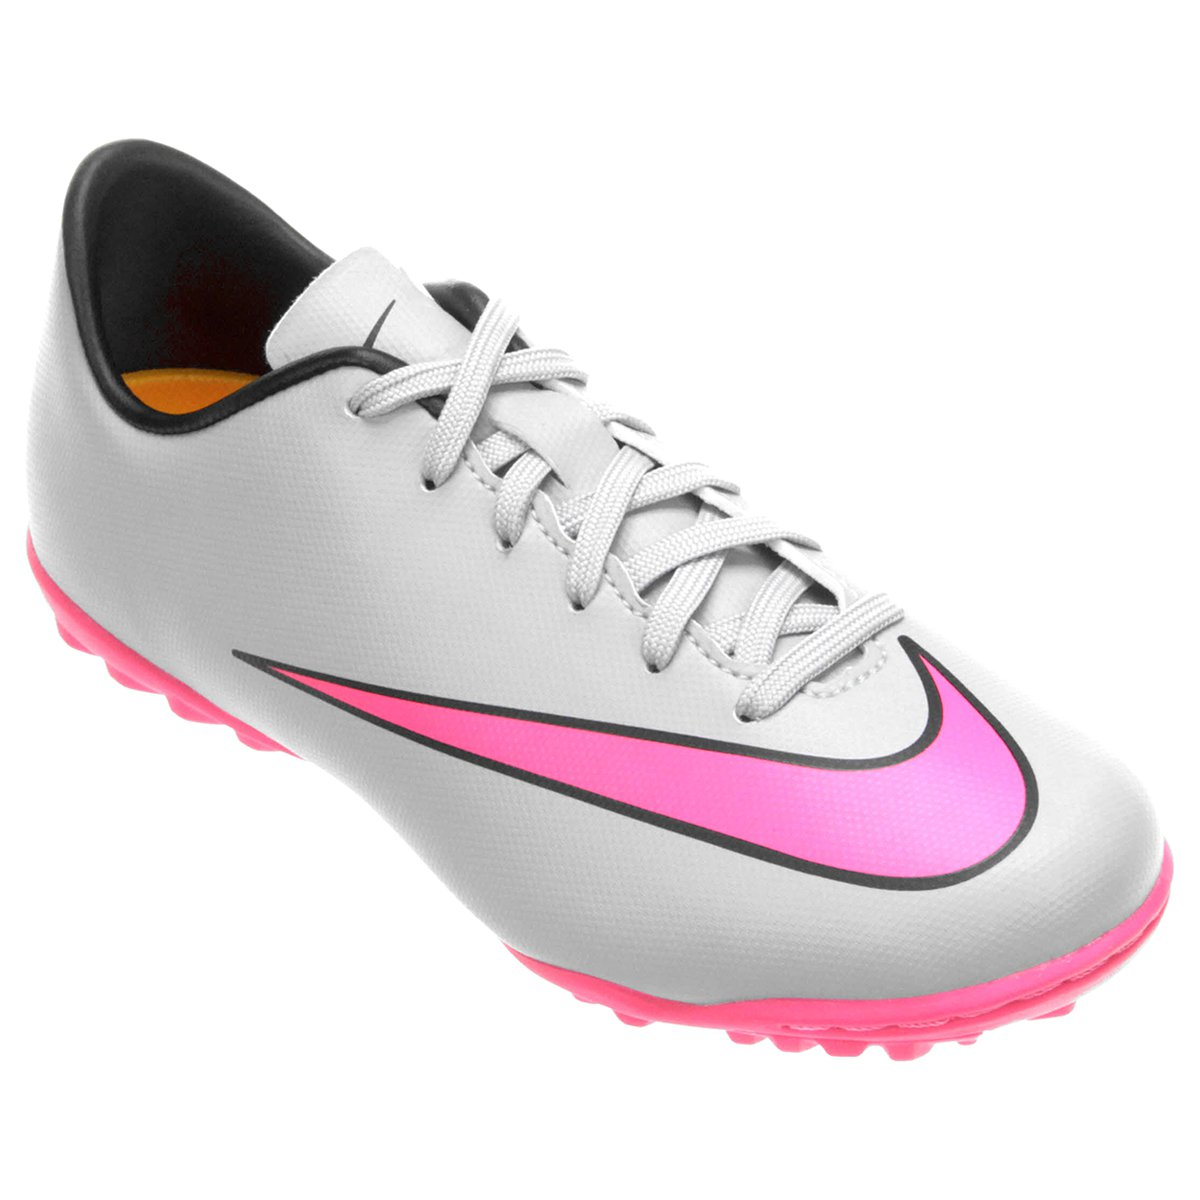 ad30c65354 ... aliexpress chuteira nike mercurial victory 5 tf society infantil compre  agora netshoes 5927b cb091